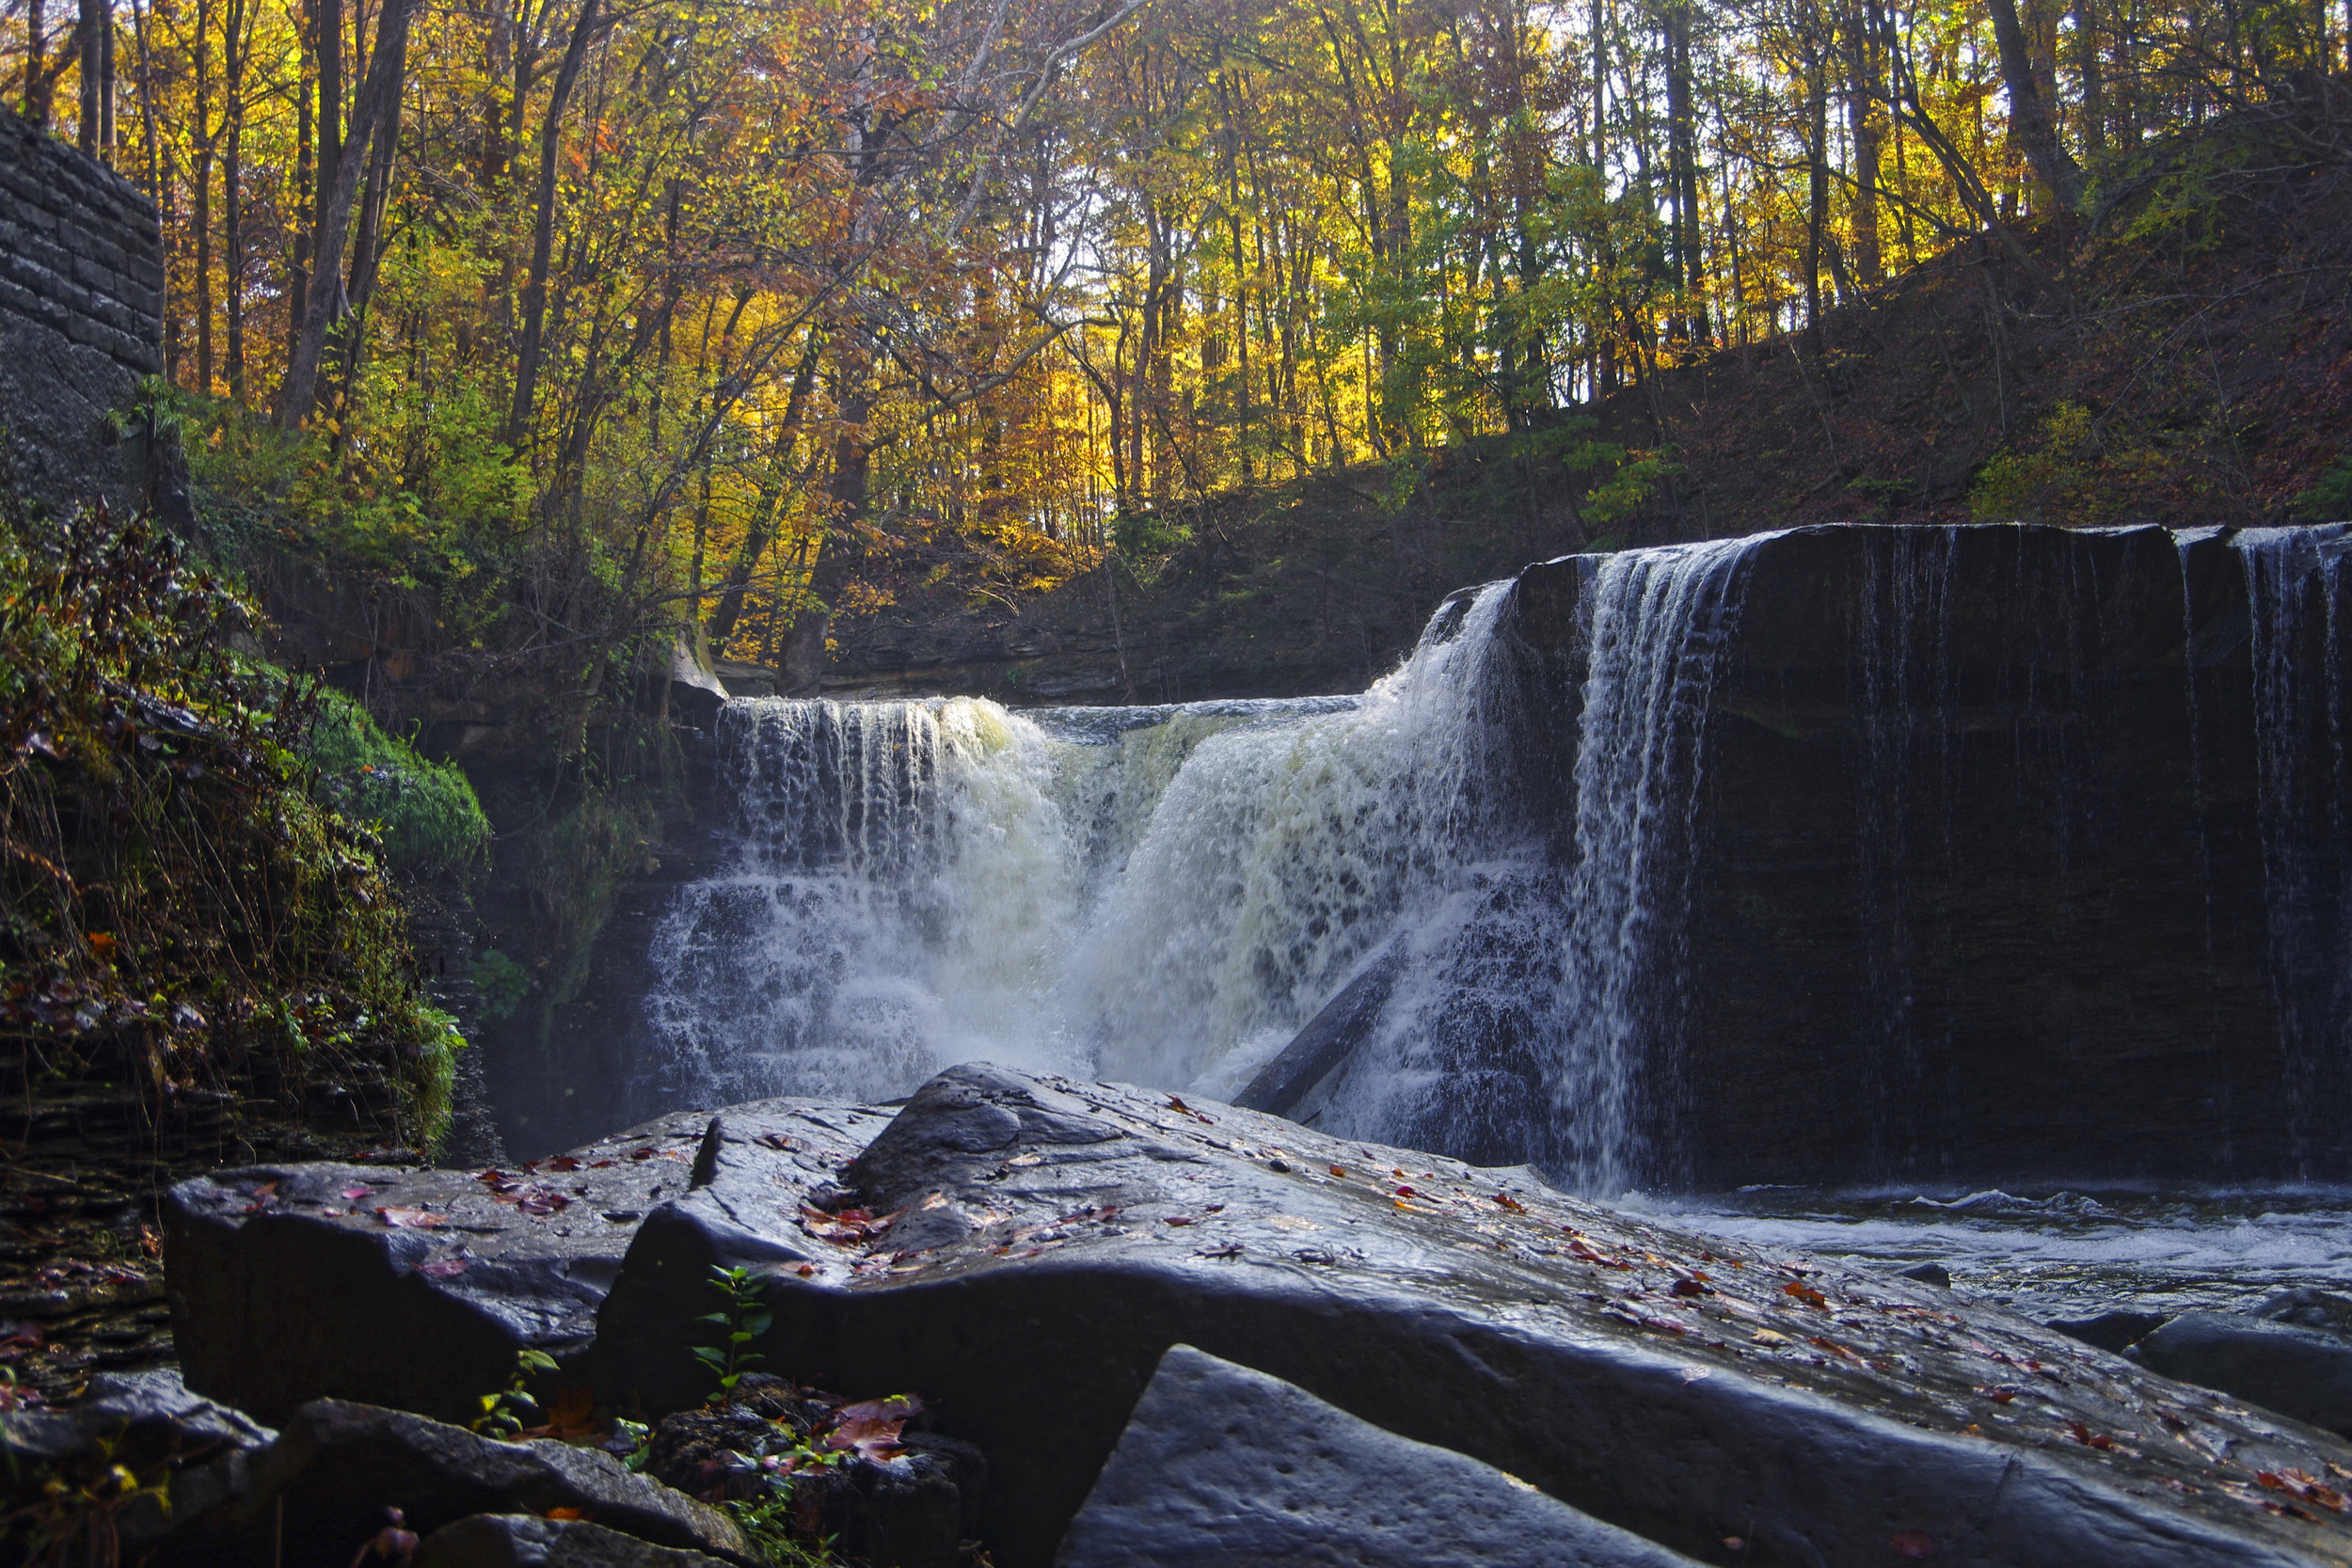 Cuyahoga_Valley_National_Park_19.jpg